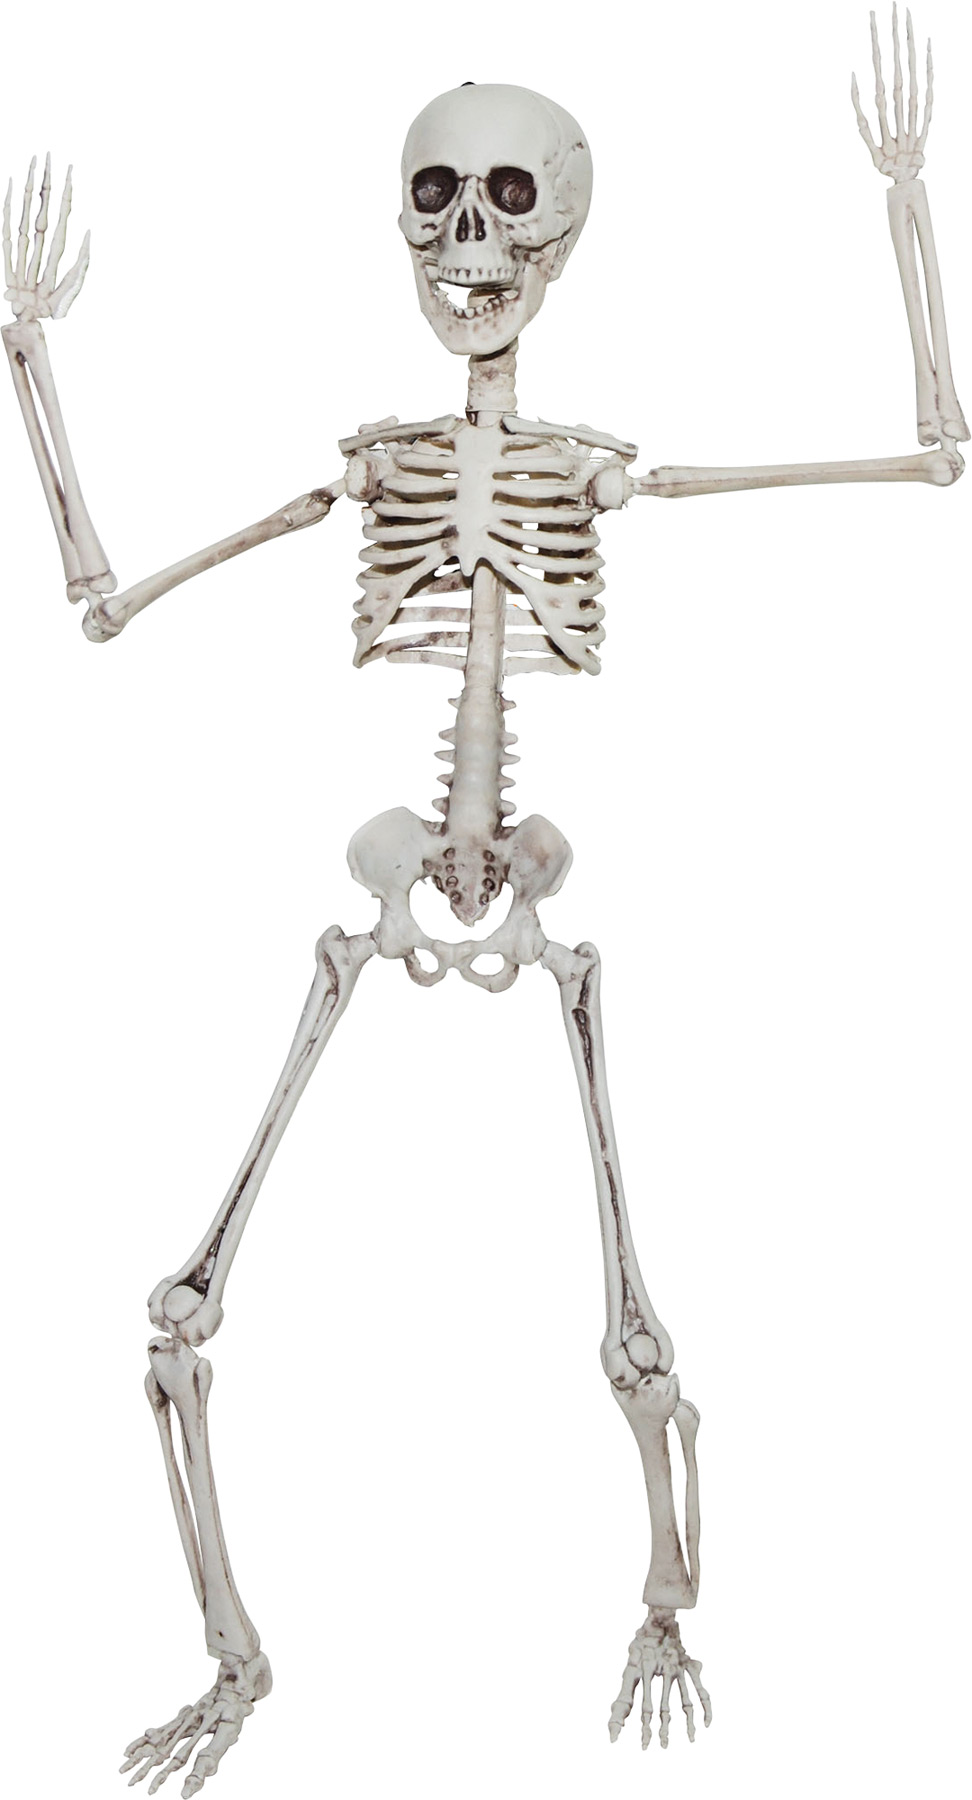 POSEABLE SKELETON 20 IN